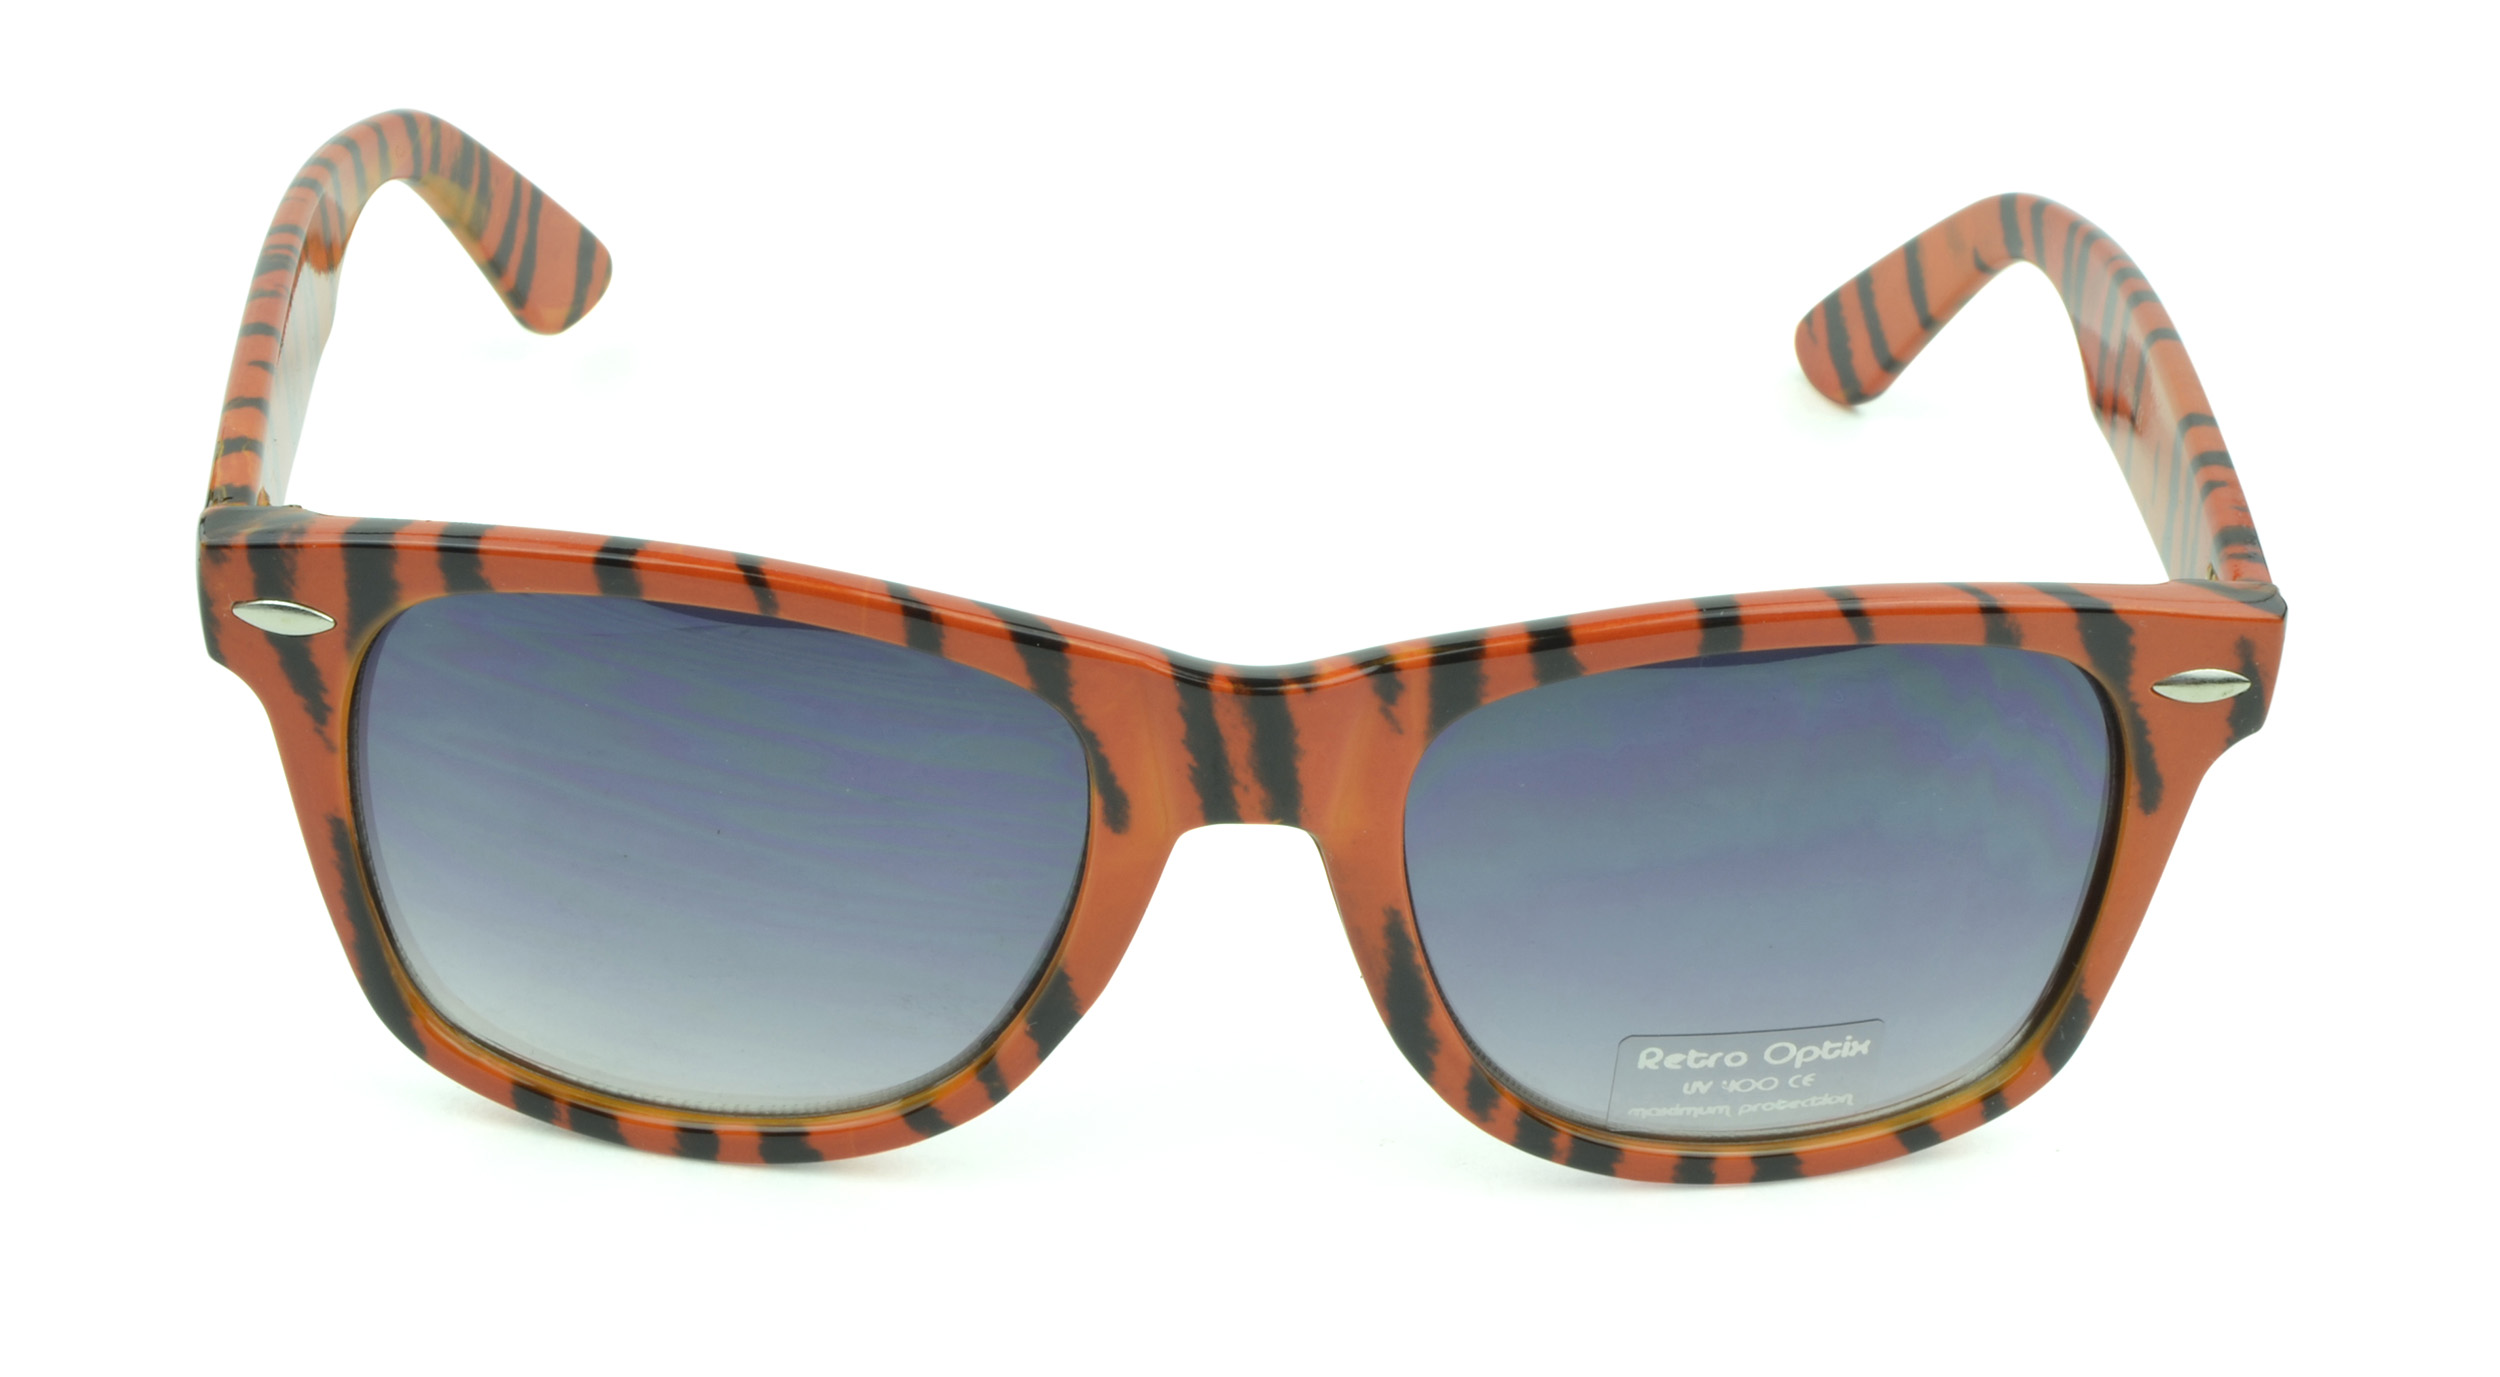 Belle Donne - Unisex Animal Print Wayfarer Sunglasses - Orange Stripes